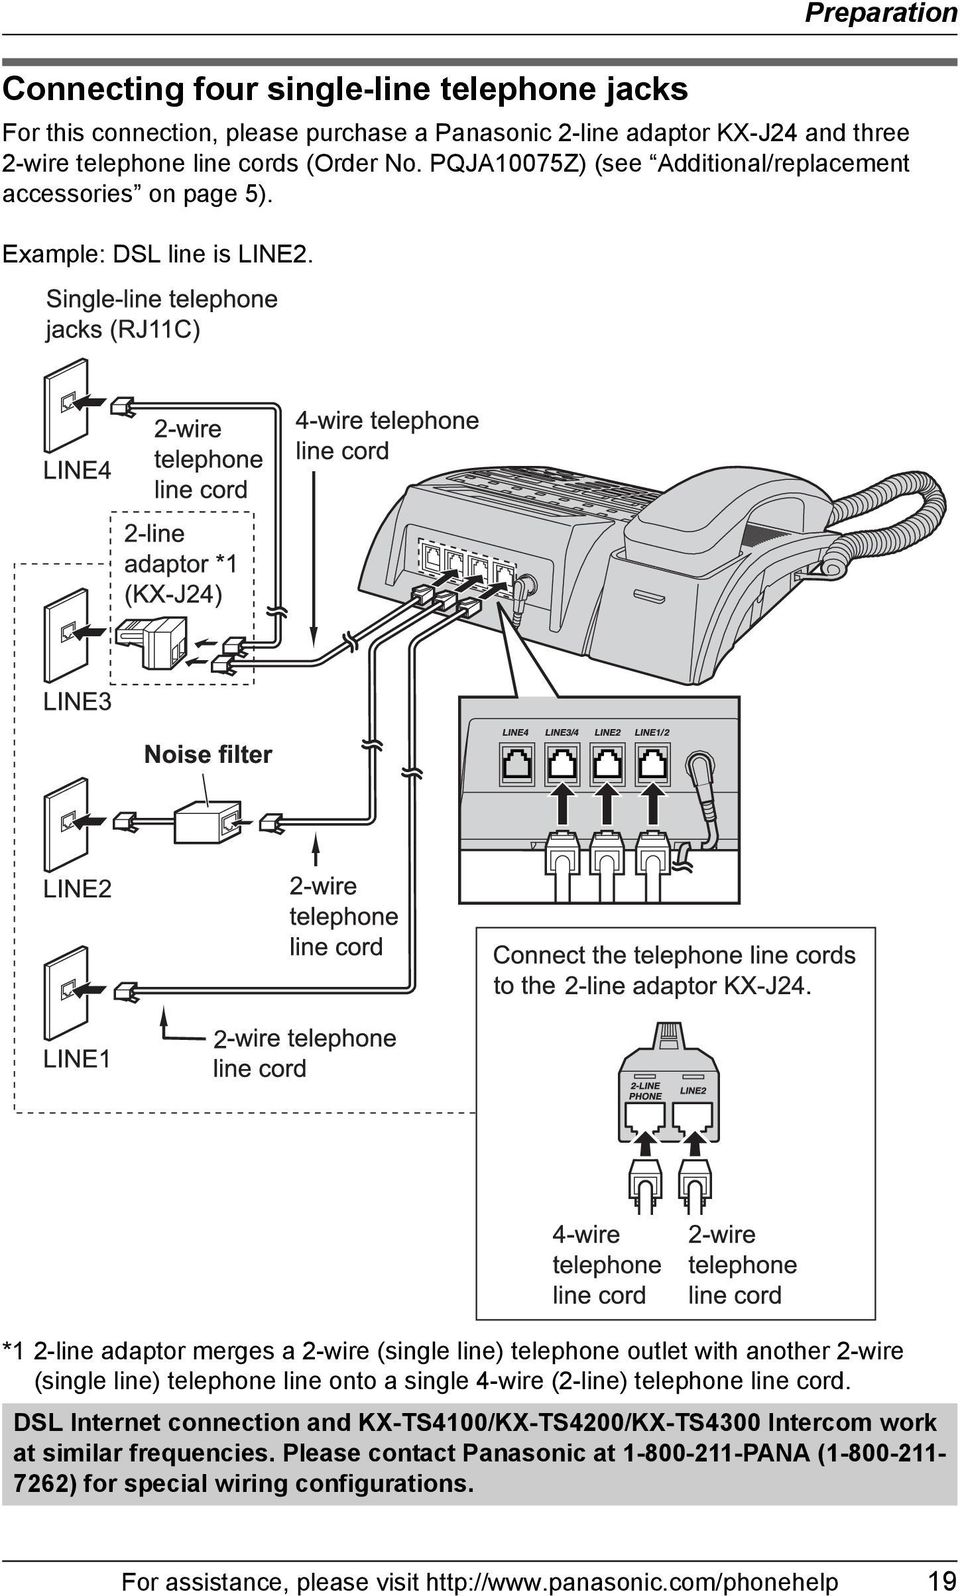 *1 2-line adaptor merges a 2-wire (single line) telephone outlet with another 2-wire (single line) telephone line onto a single 4-wire (2-line) telephone line cord.